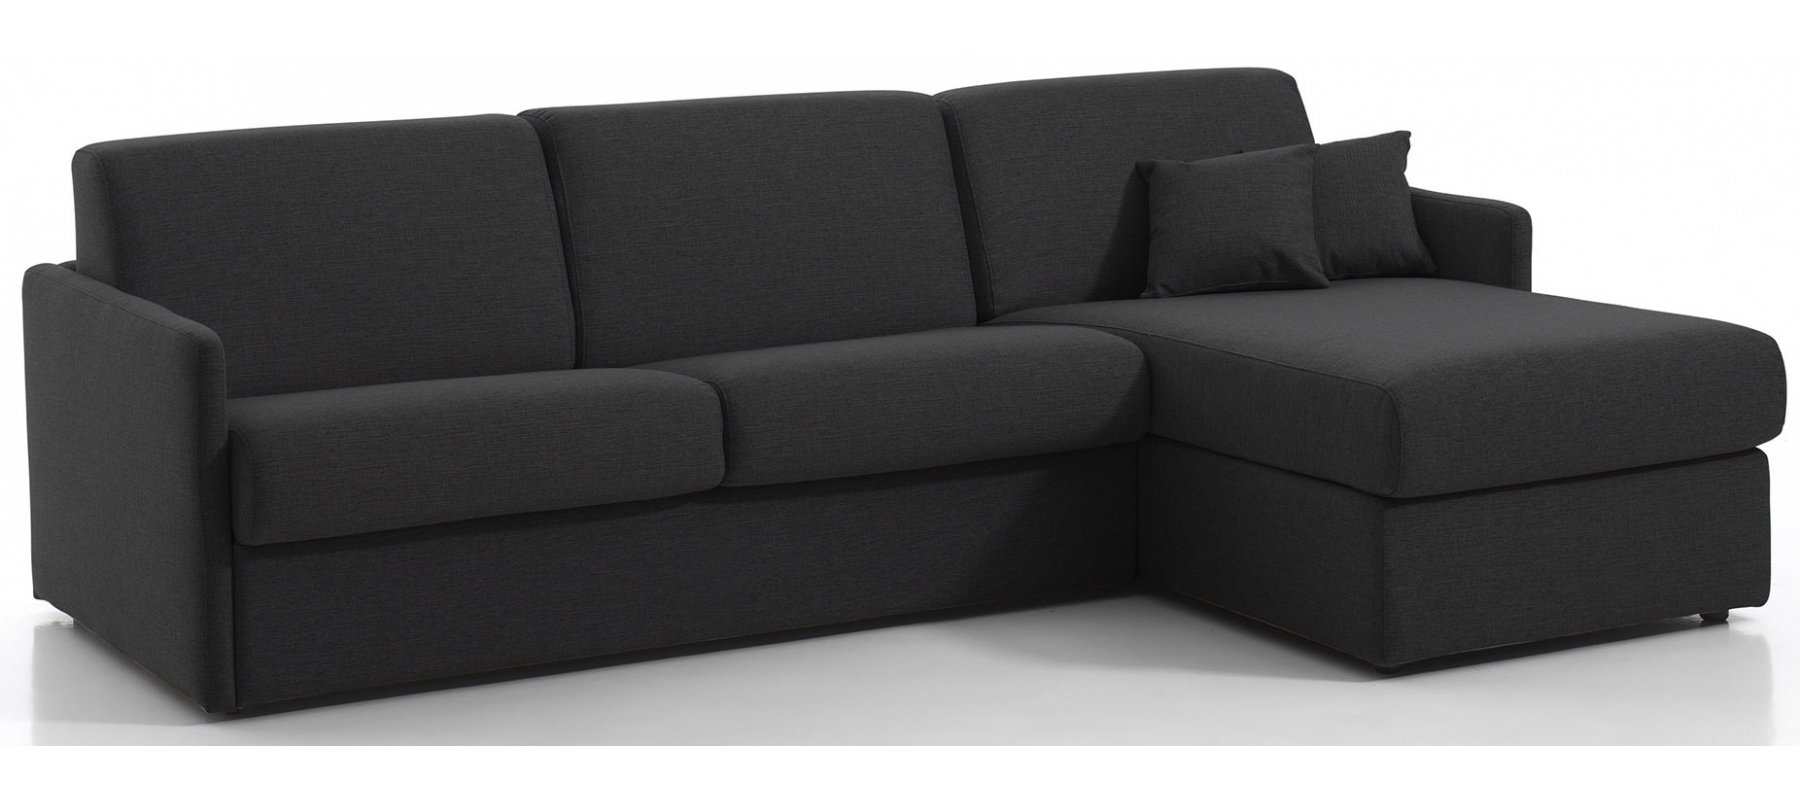 canap convertible d 39 angle montpellier couchage 120 cm avec rapido. Black Bedroom Furniture Sets. Home Design Ideas